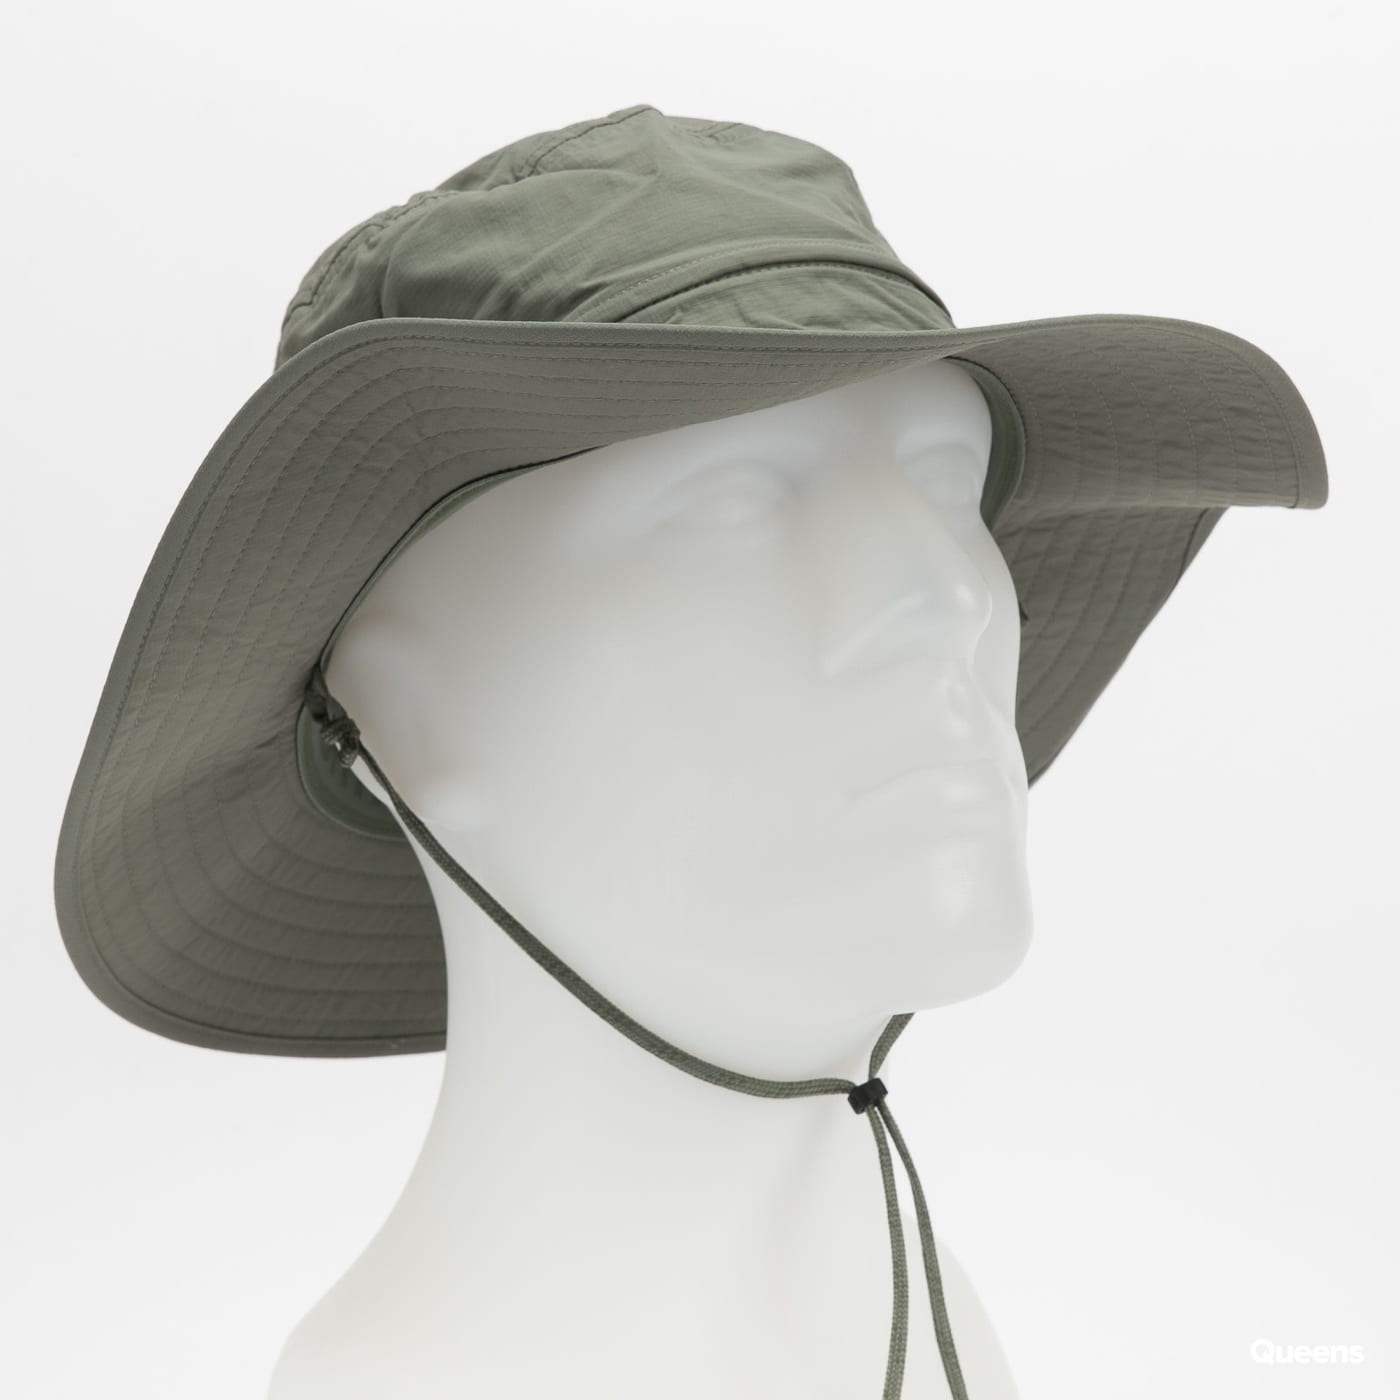 The North Face Horizon Breeze Brimmer Hat olive